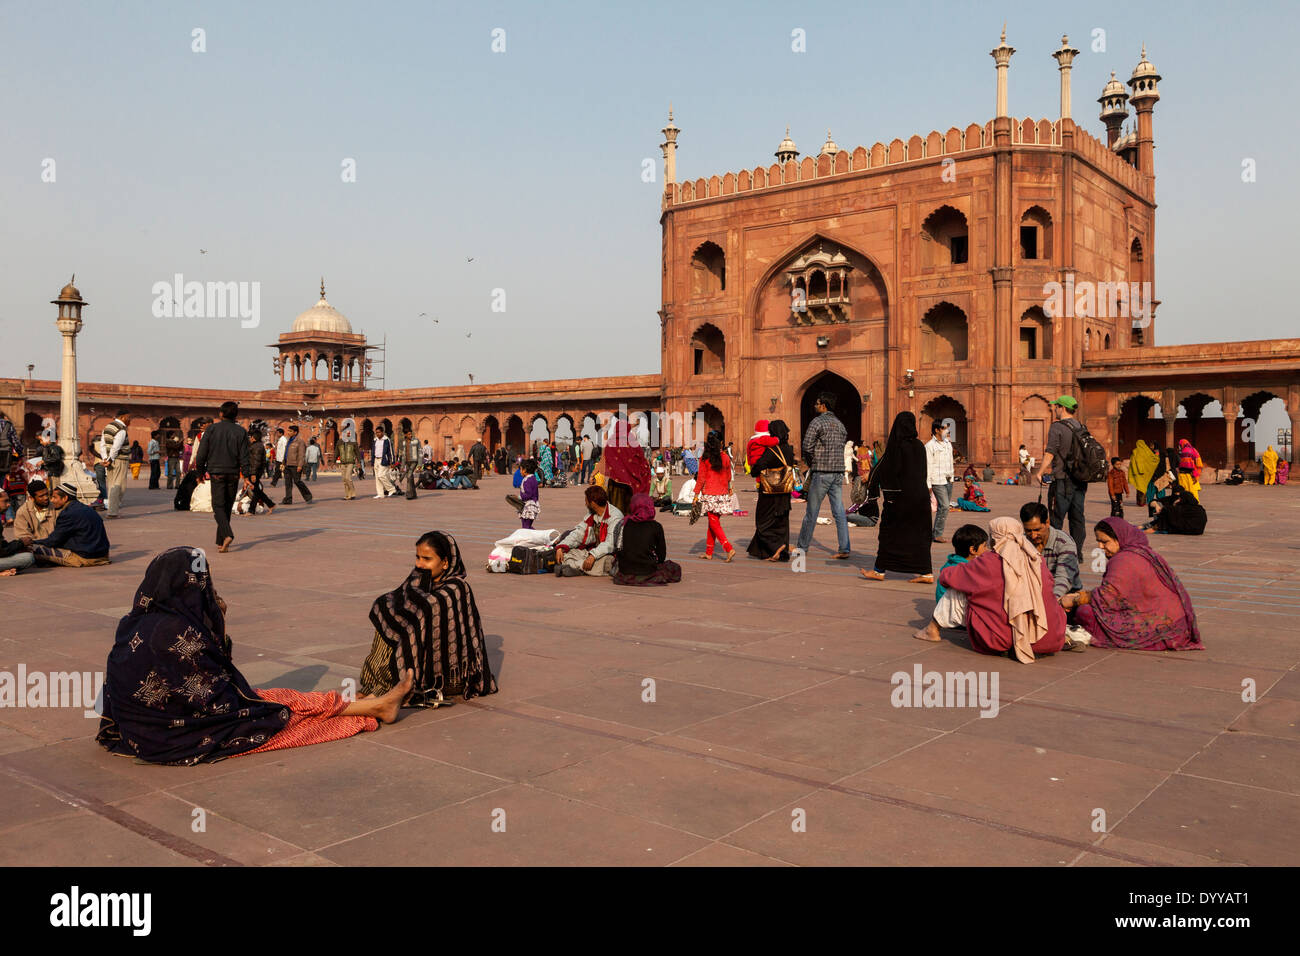 New Delhi, India. Courtyard of the Jama Masjid (Friday Mosque), India's largest mosque, built 1644-1656. - Stock Image